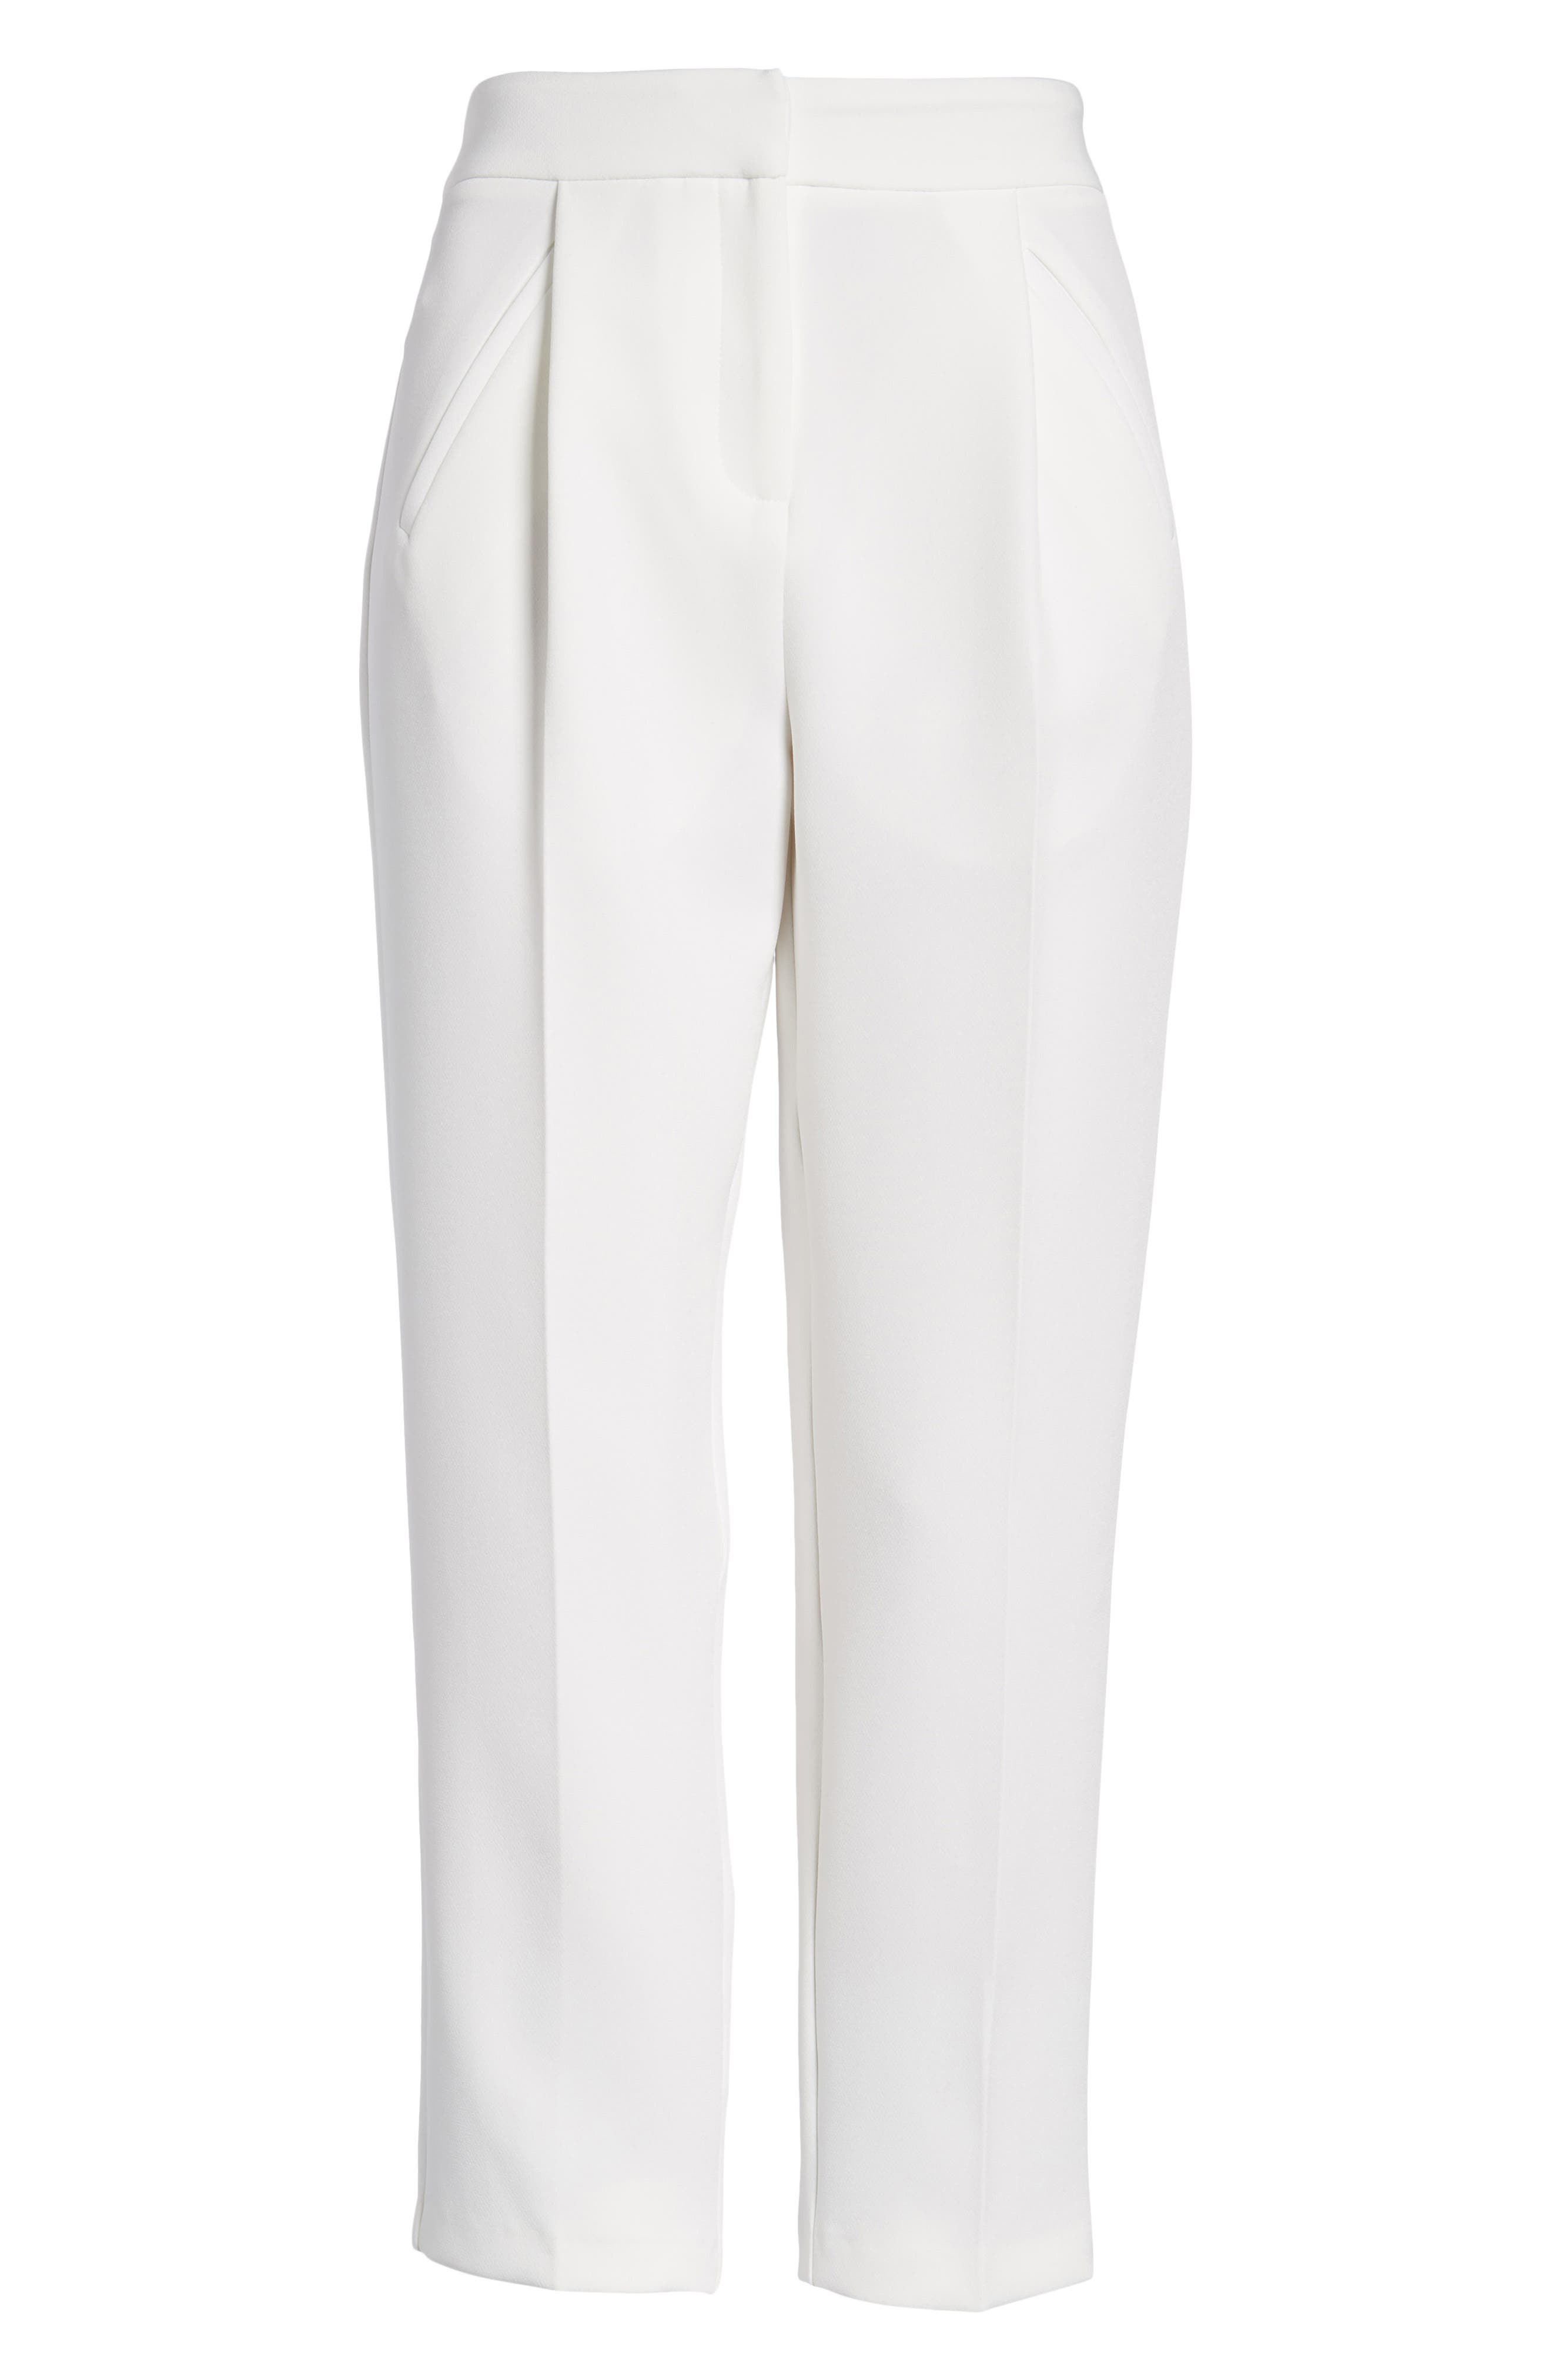 Clean Pocket Peg Trousers,                             Alternate thumbnail 7, color,                             900